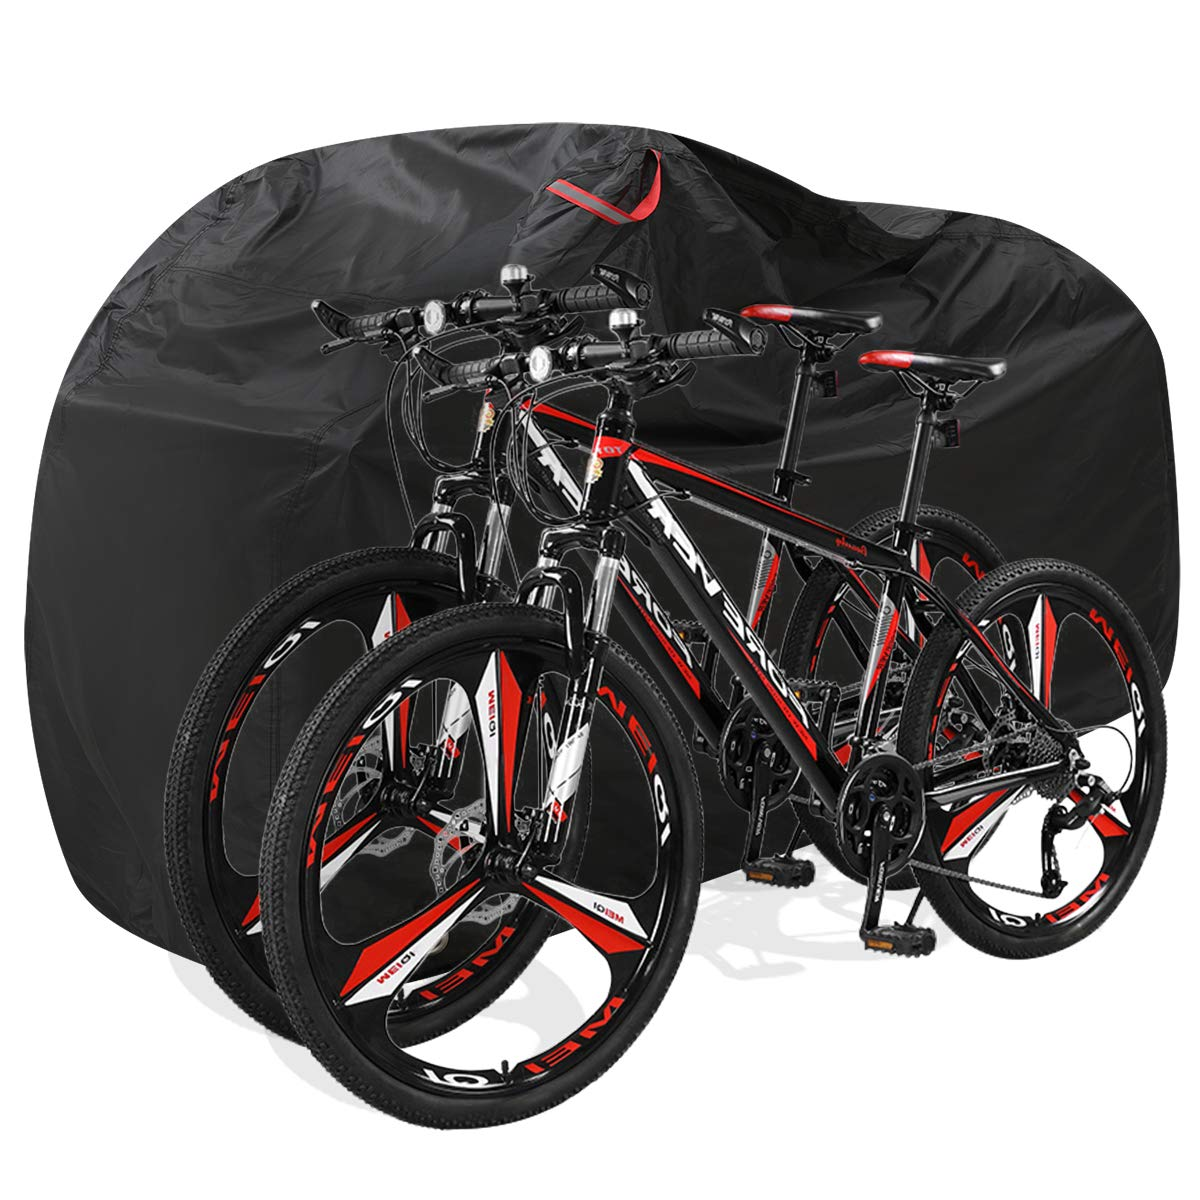 Aiskaer Bike Cover for Outdoor Bicycle Storage - Large 1, XL 1-2, XXL 2-3 Bikes - Heavy 210D Oxford Material, Waterproof & Anti-UV - Protection from All Weather Conditions for Mountain & Road Bikes